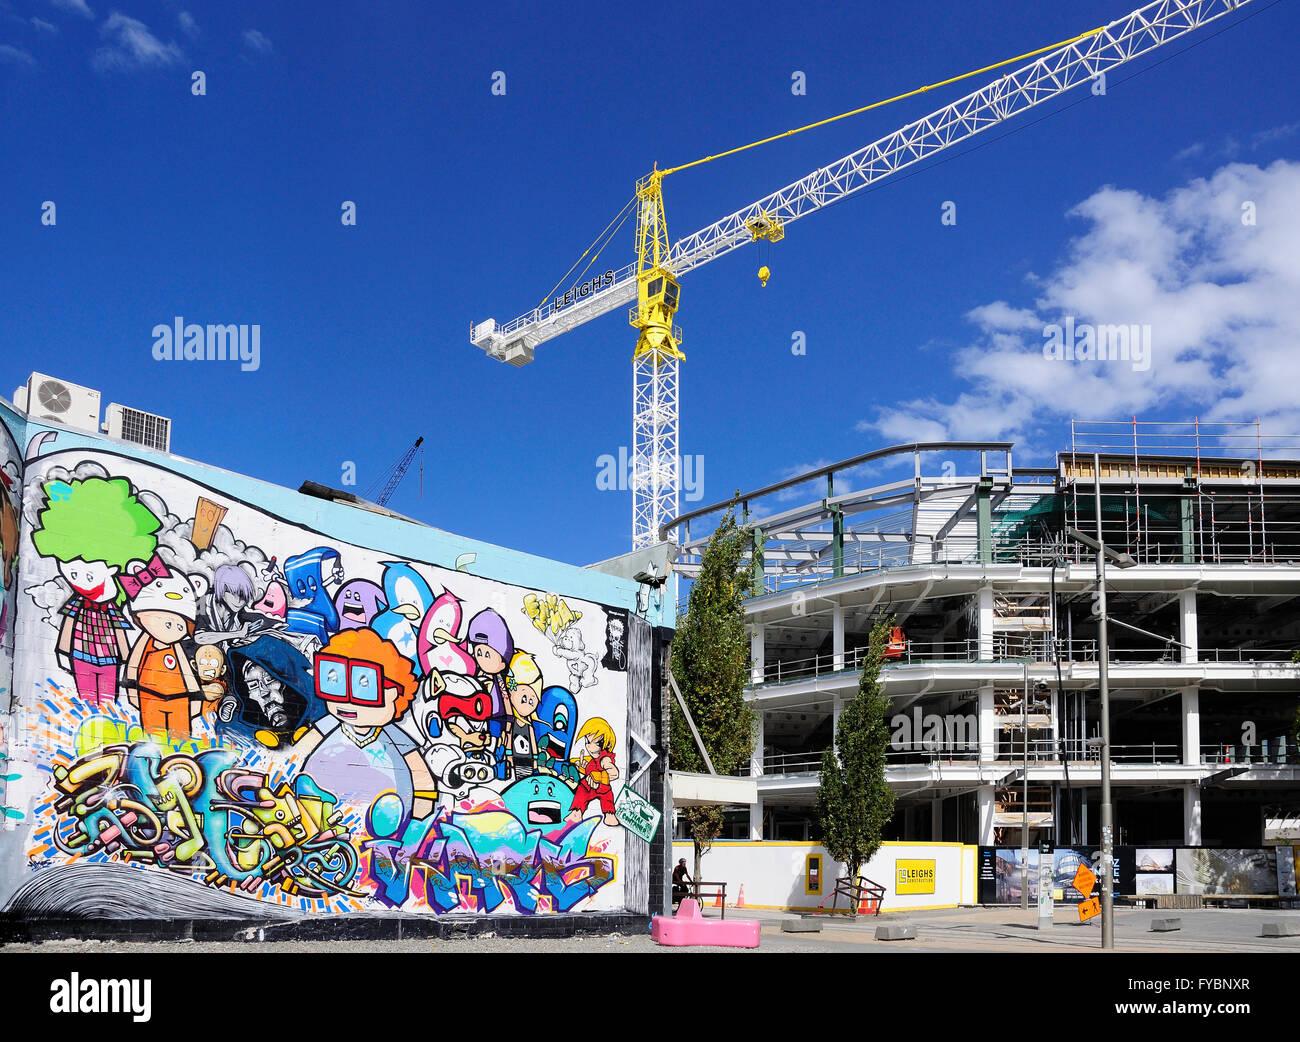 Wall mural and earthquake rebuild, Hereford Street, Christchurch, Canterbury, South Island, New Zealand - Stock Image